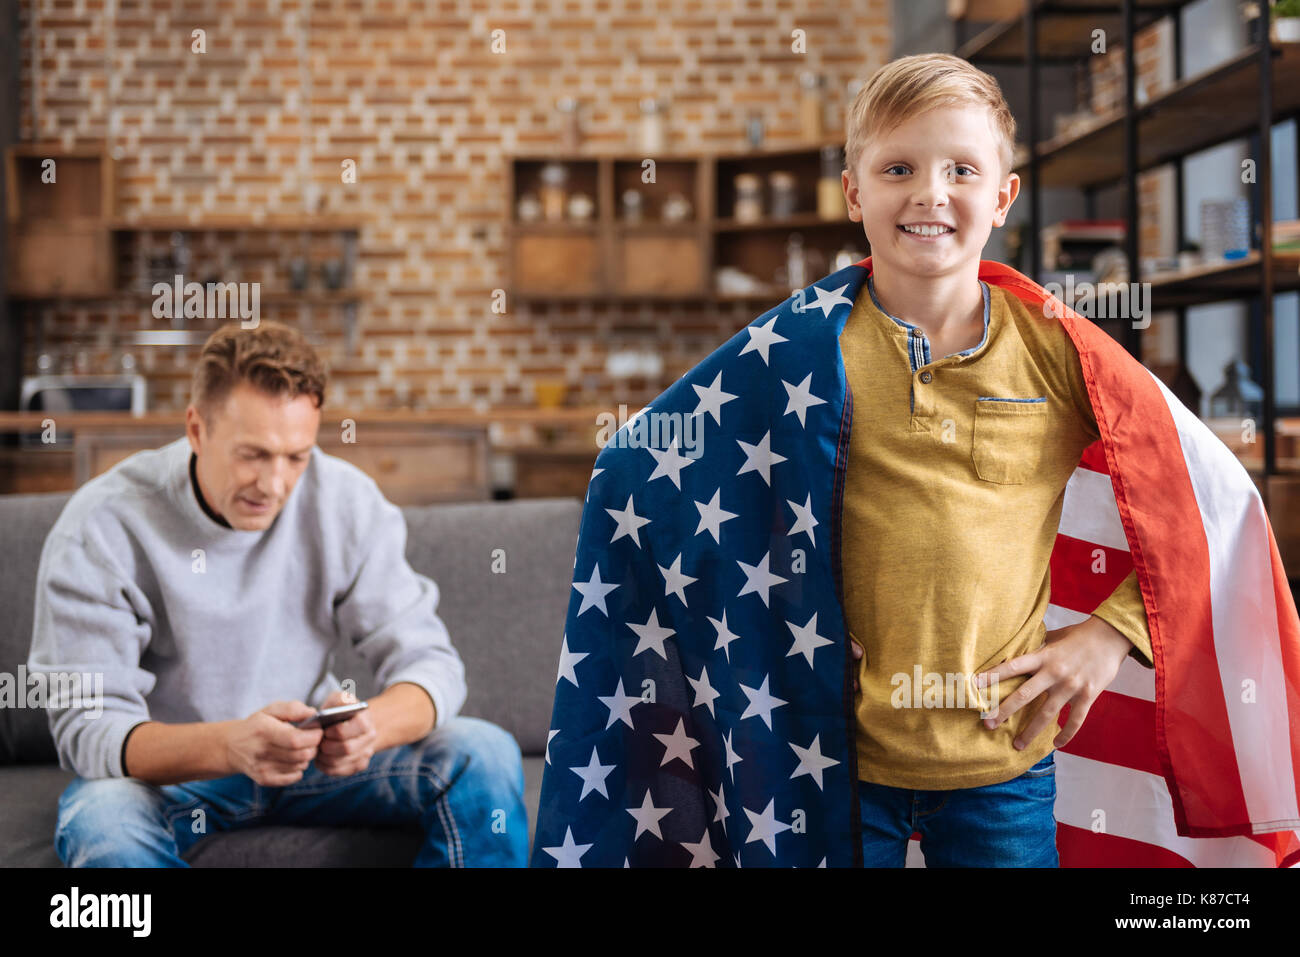 Pleasant pre-teen boy posing with US flag - Stock Image